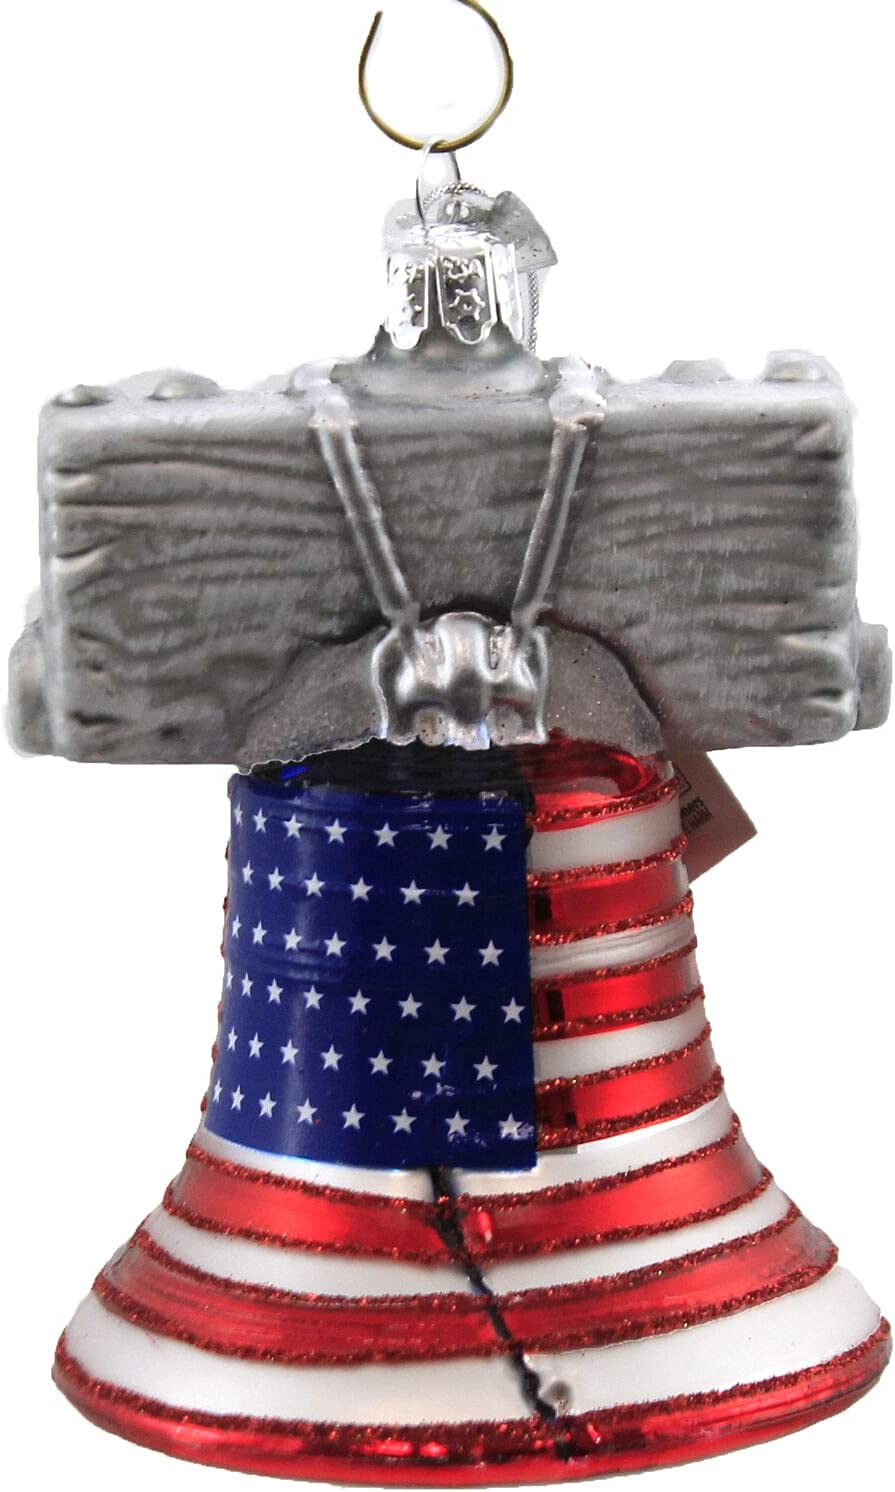 Patriotic Liberty Bell Glass Christmas Ornament NB1444 OFFicial site †Tree New popularity